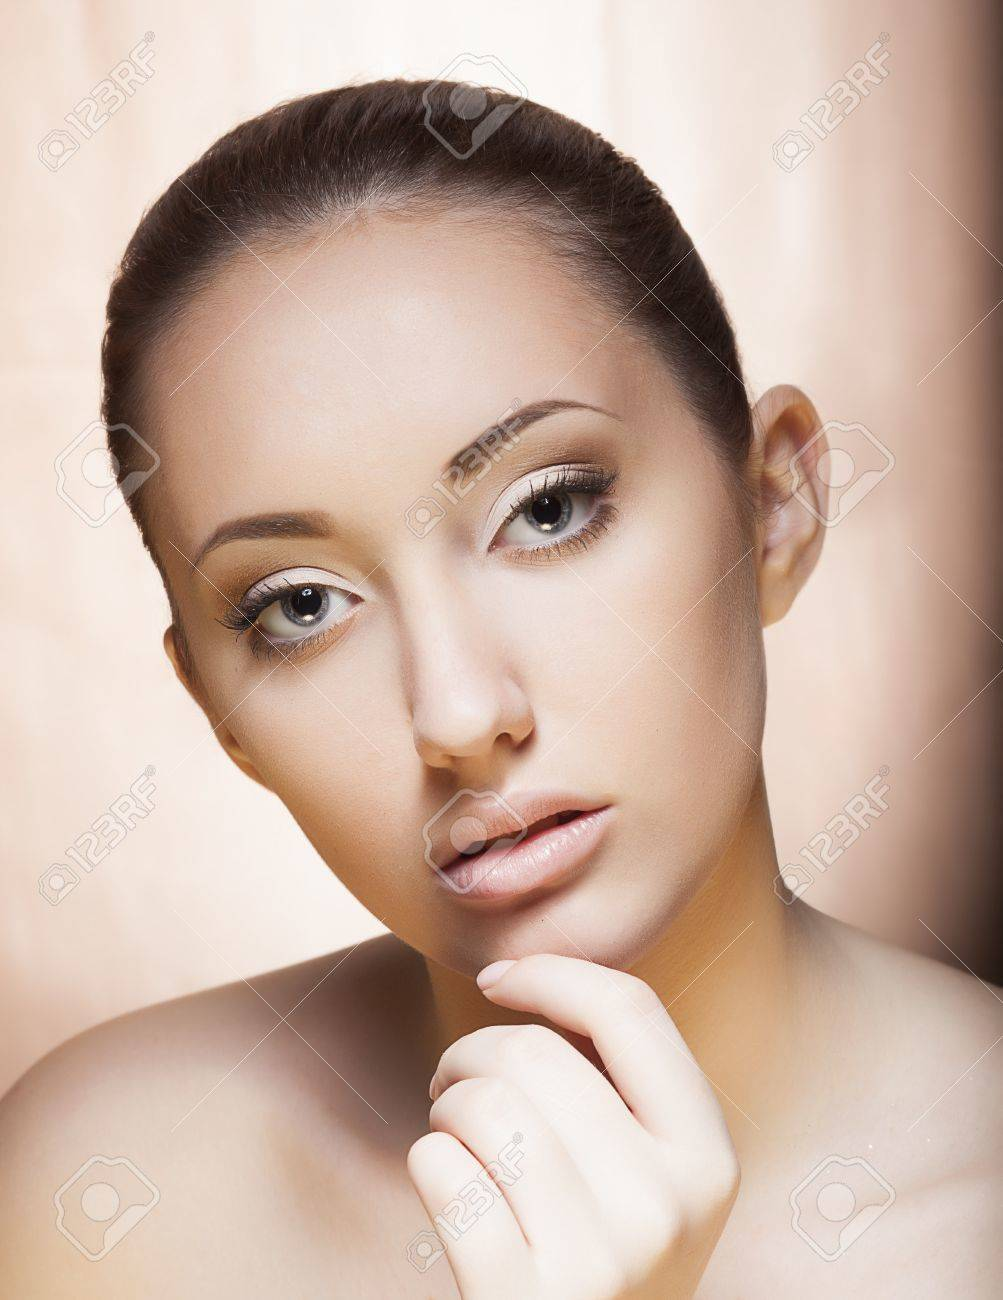 Fresh Young female Face - Spa concept, Cosmetology concept Stock Photo - 16673264